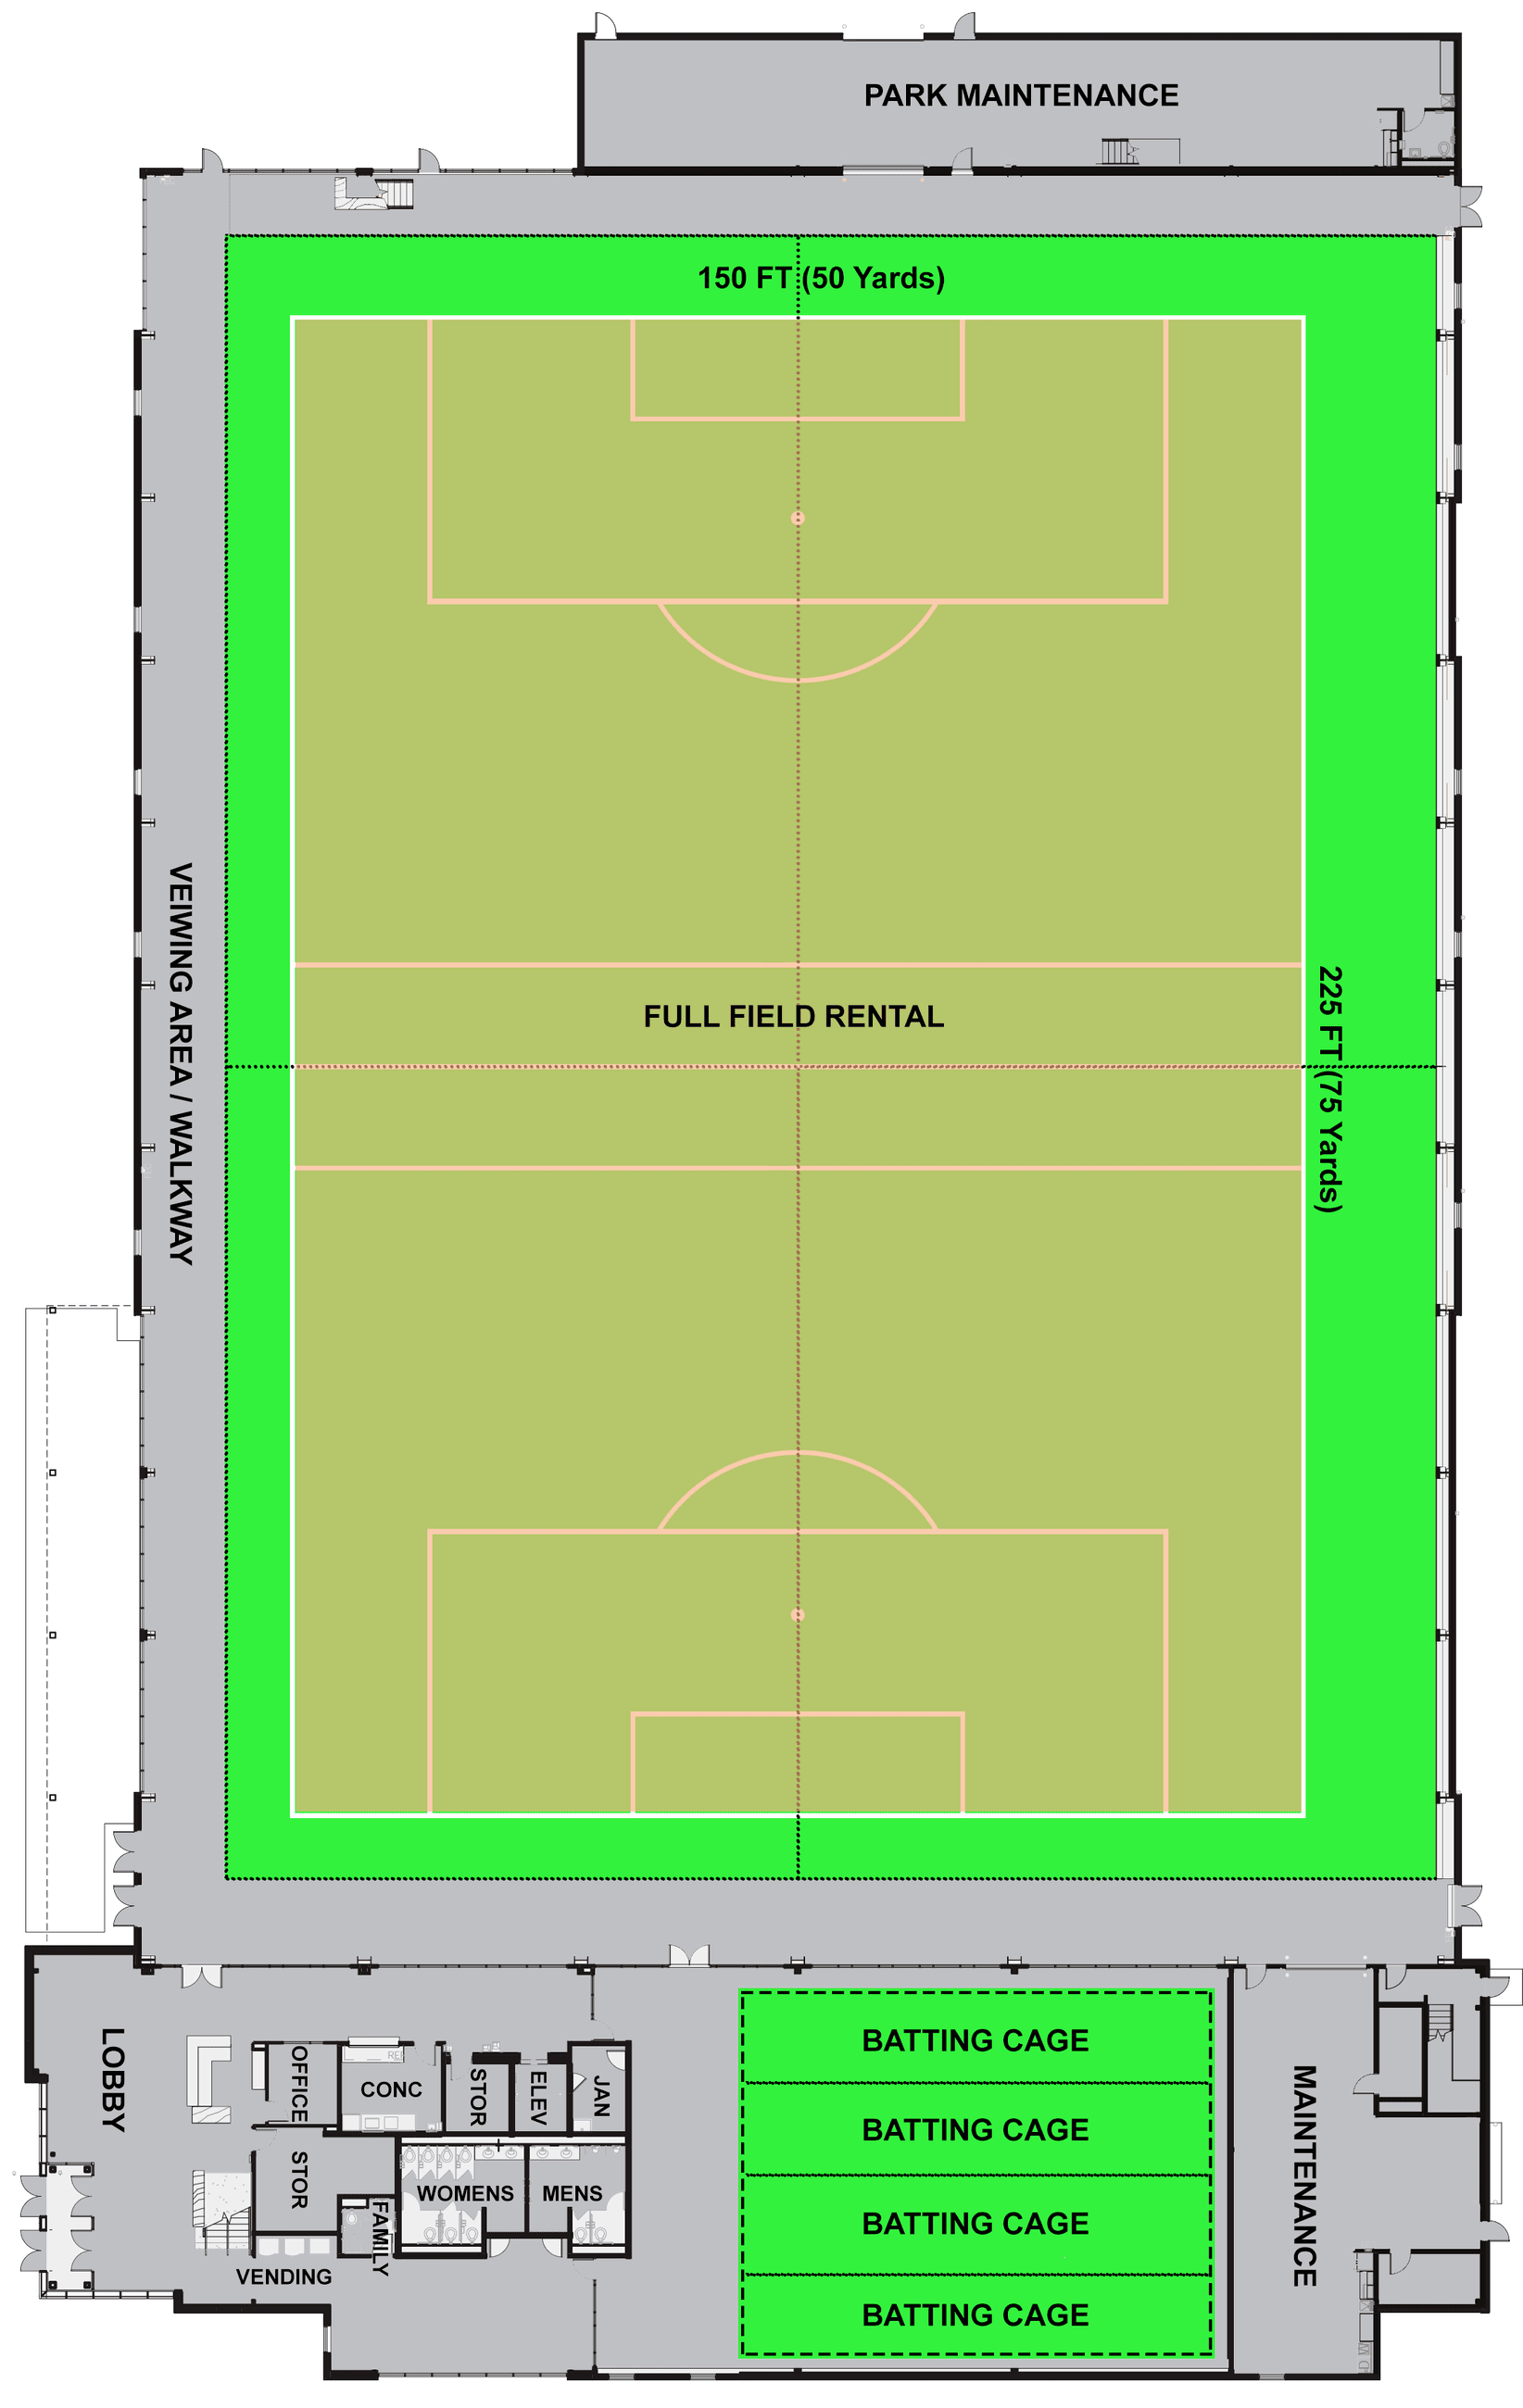 PLFH FULL FIELD RENTAL